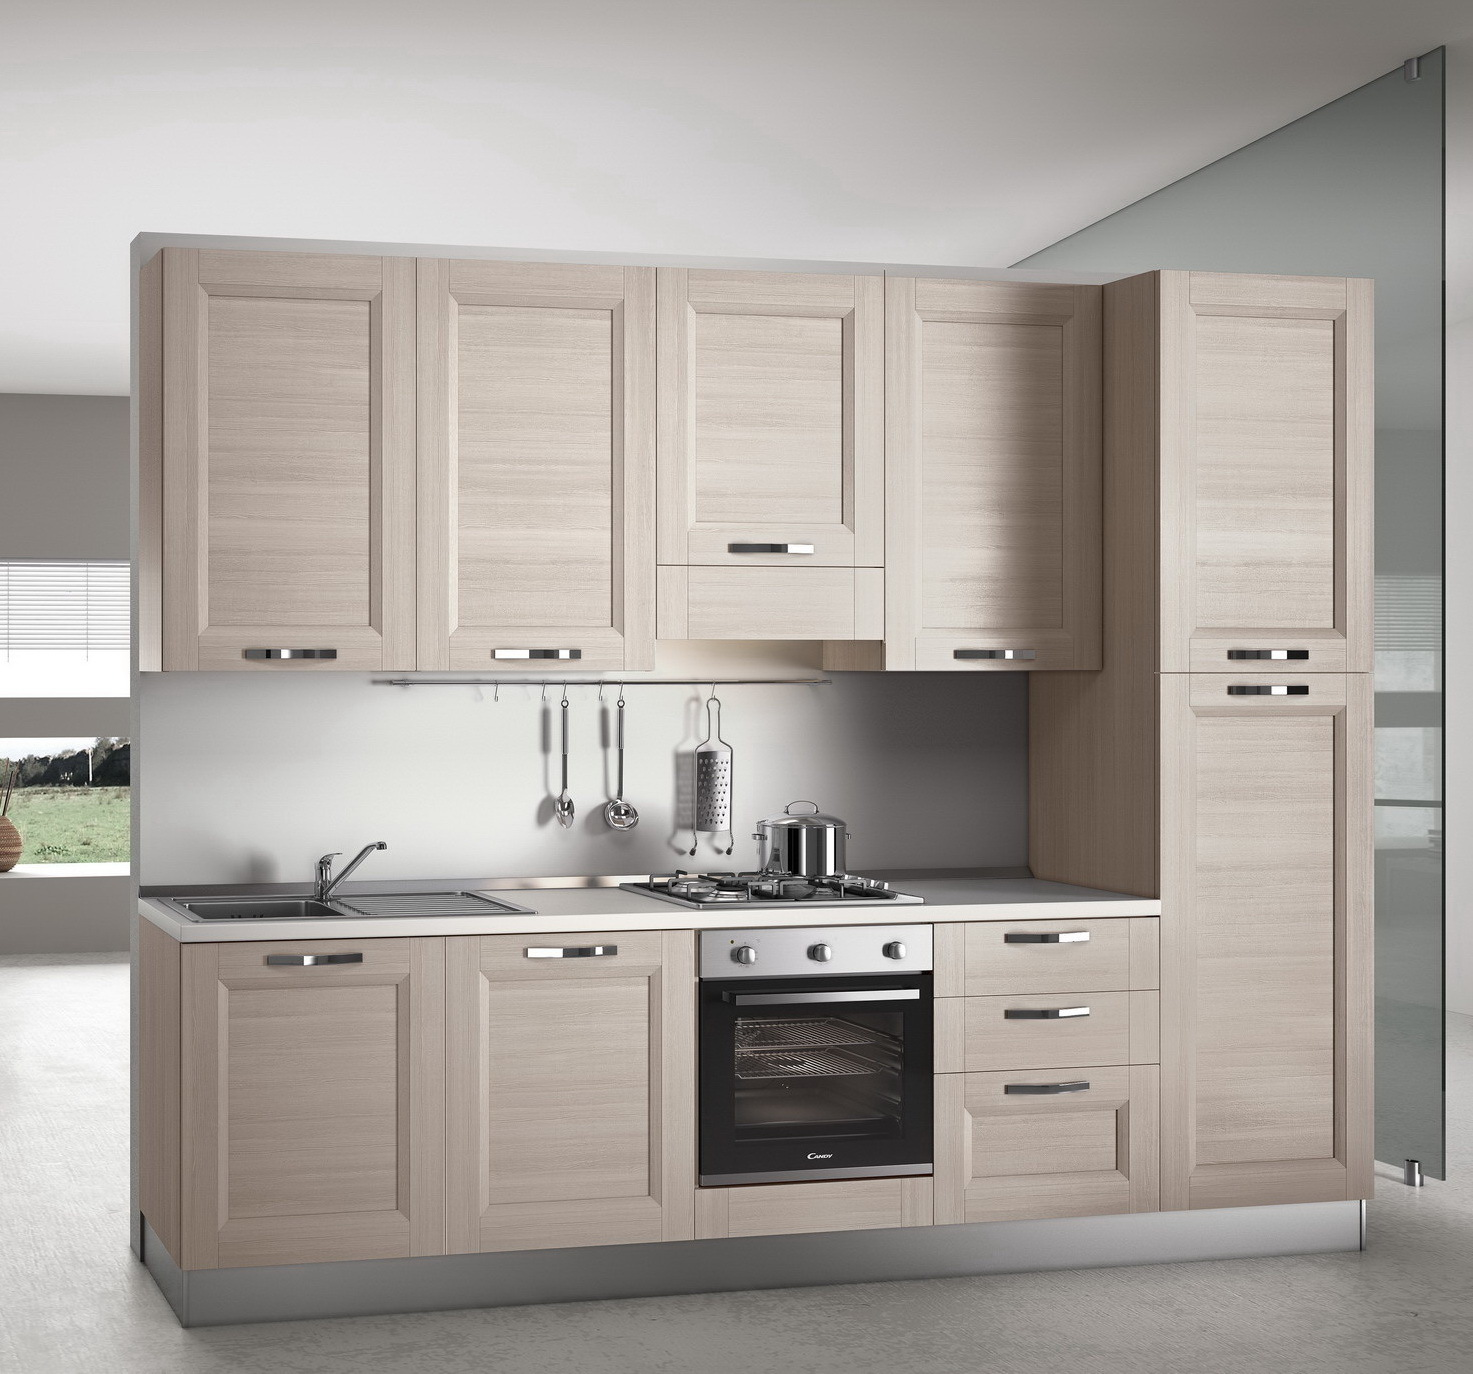 Cucine in kit hellobuy - Smontare cucina componibile ...